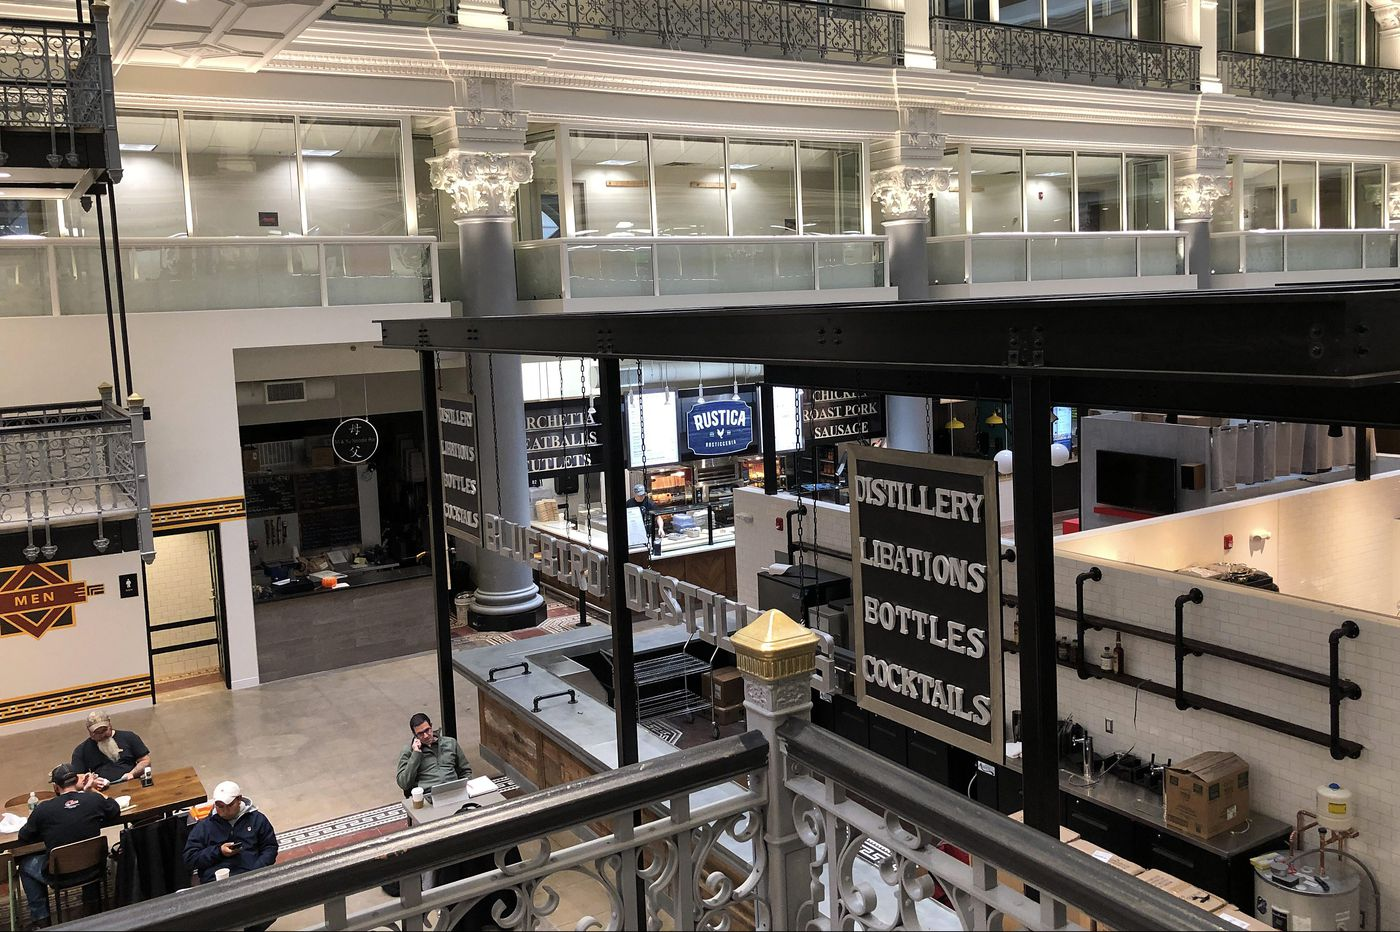 Bourse Food Hall opens, mostly | Let's Eat